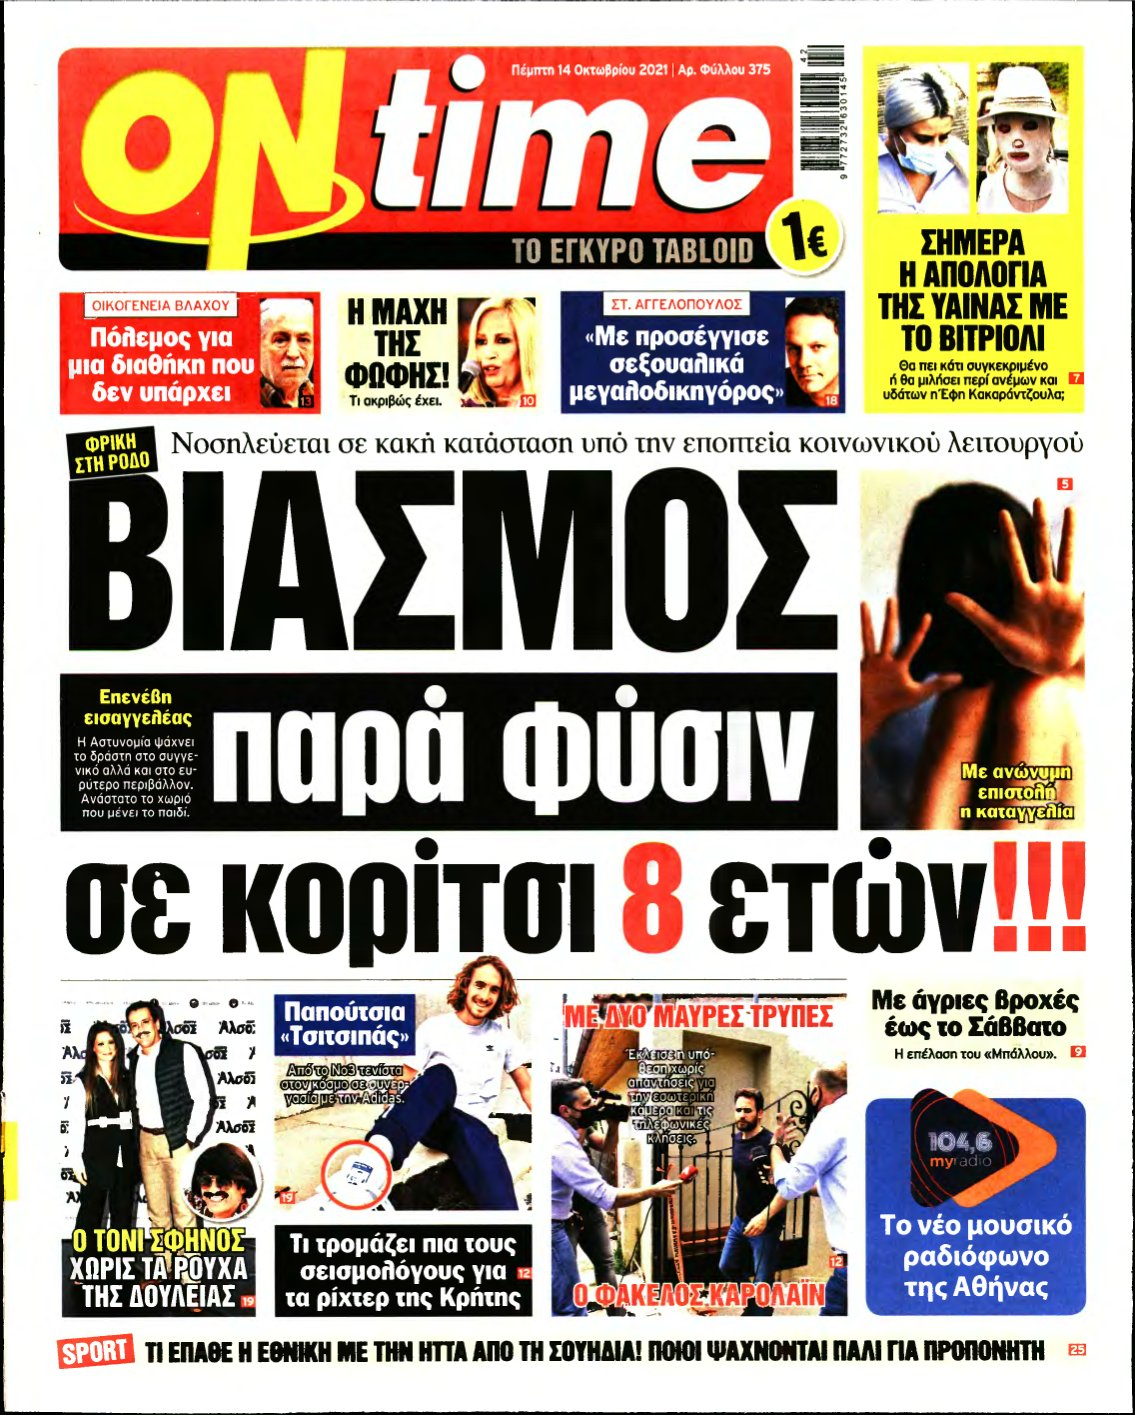 ON TIME – 14/10/2021